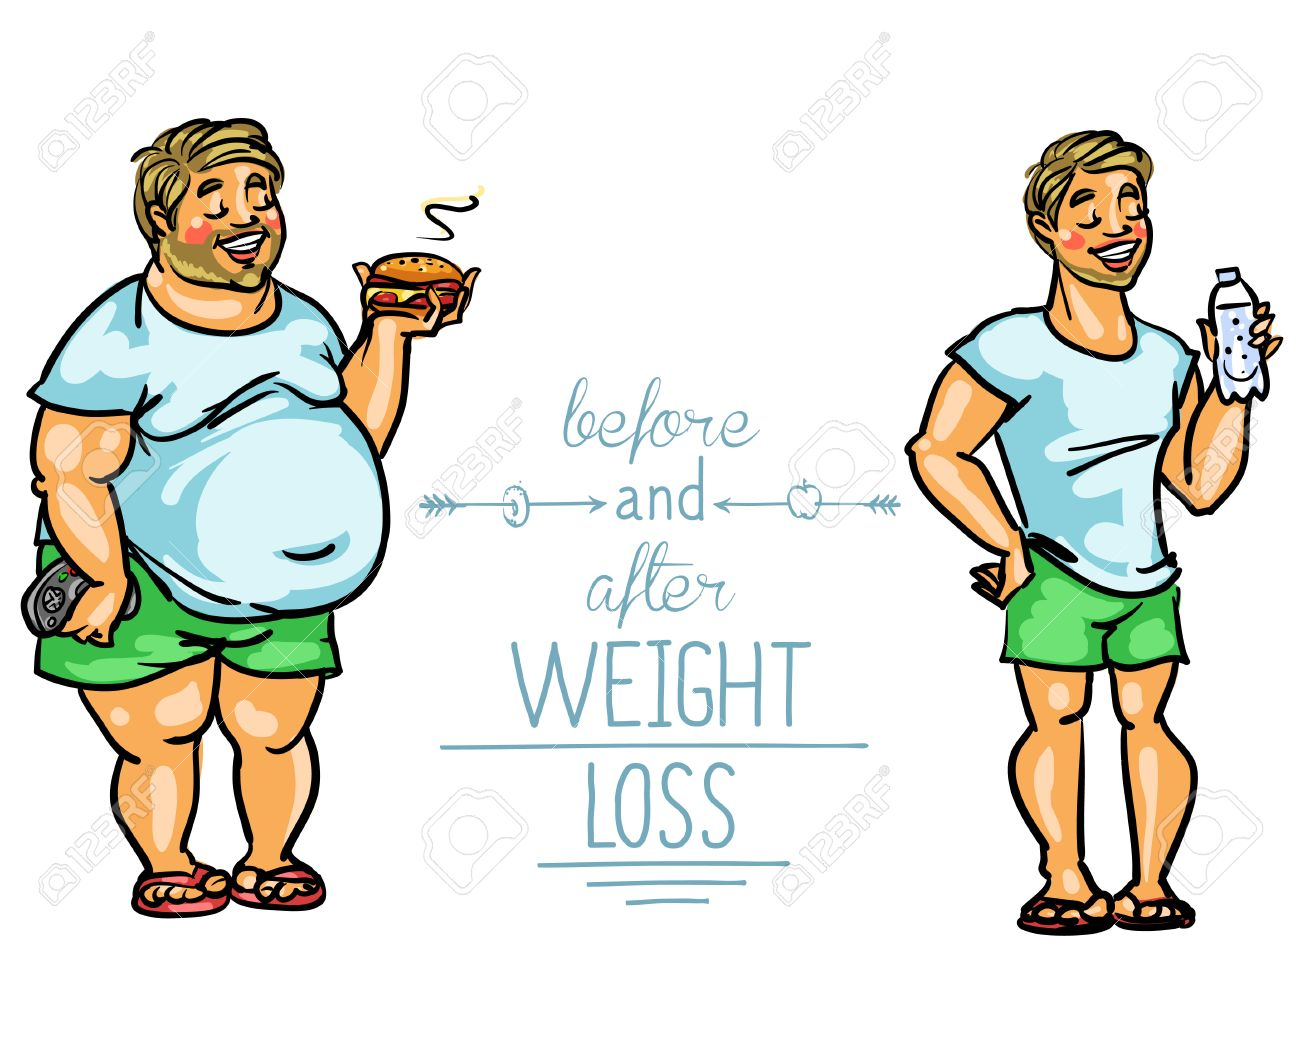 Man Before And After Weight Loss Cartoon Funny Characters Royalty Free Cliparts Vectors And Stock Illustration Image 43560190